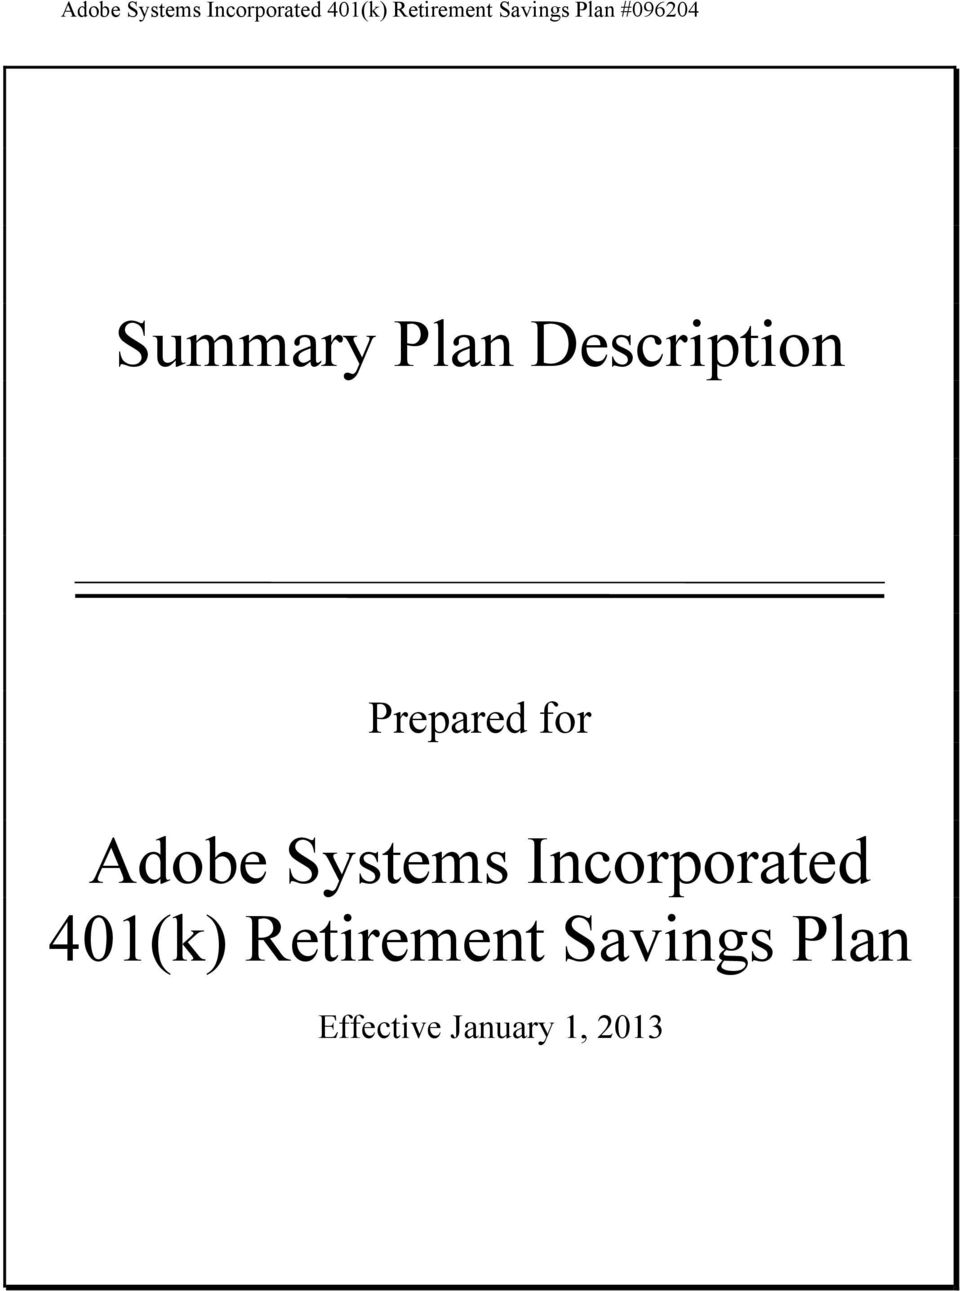 Prepared for  Savings Plan Effective January